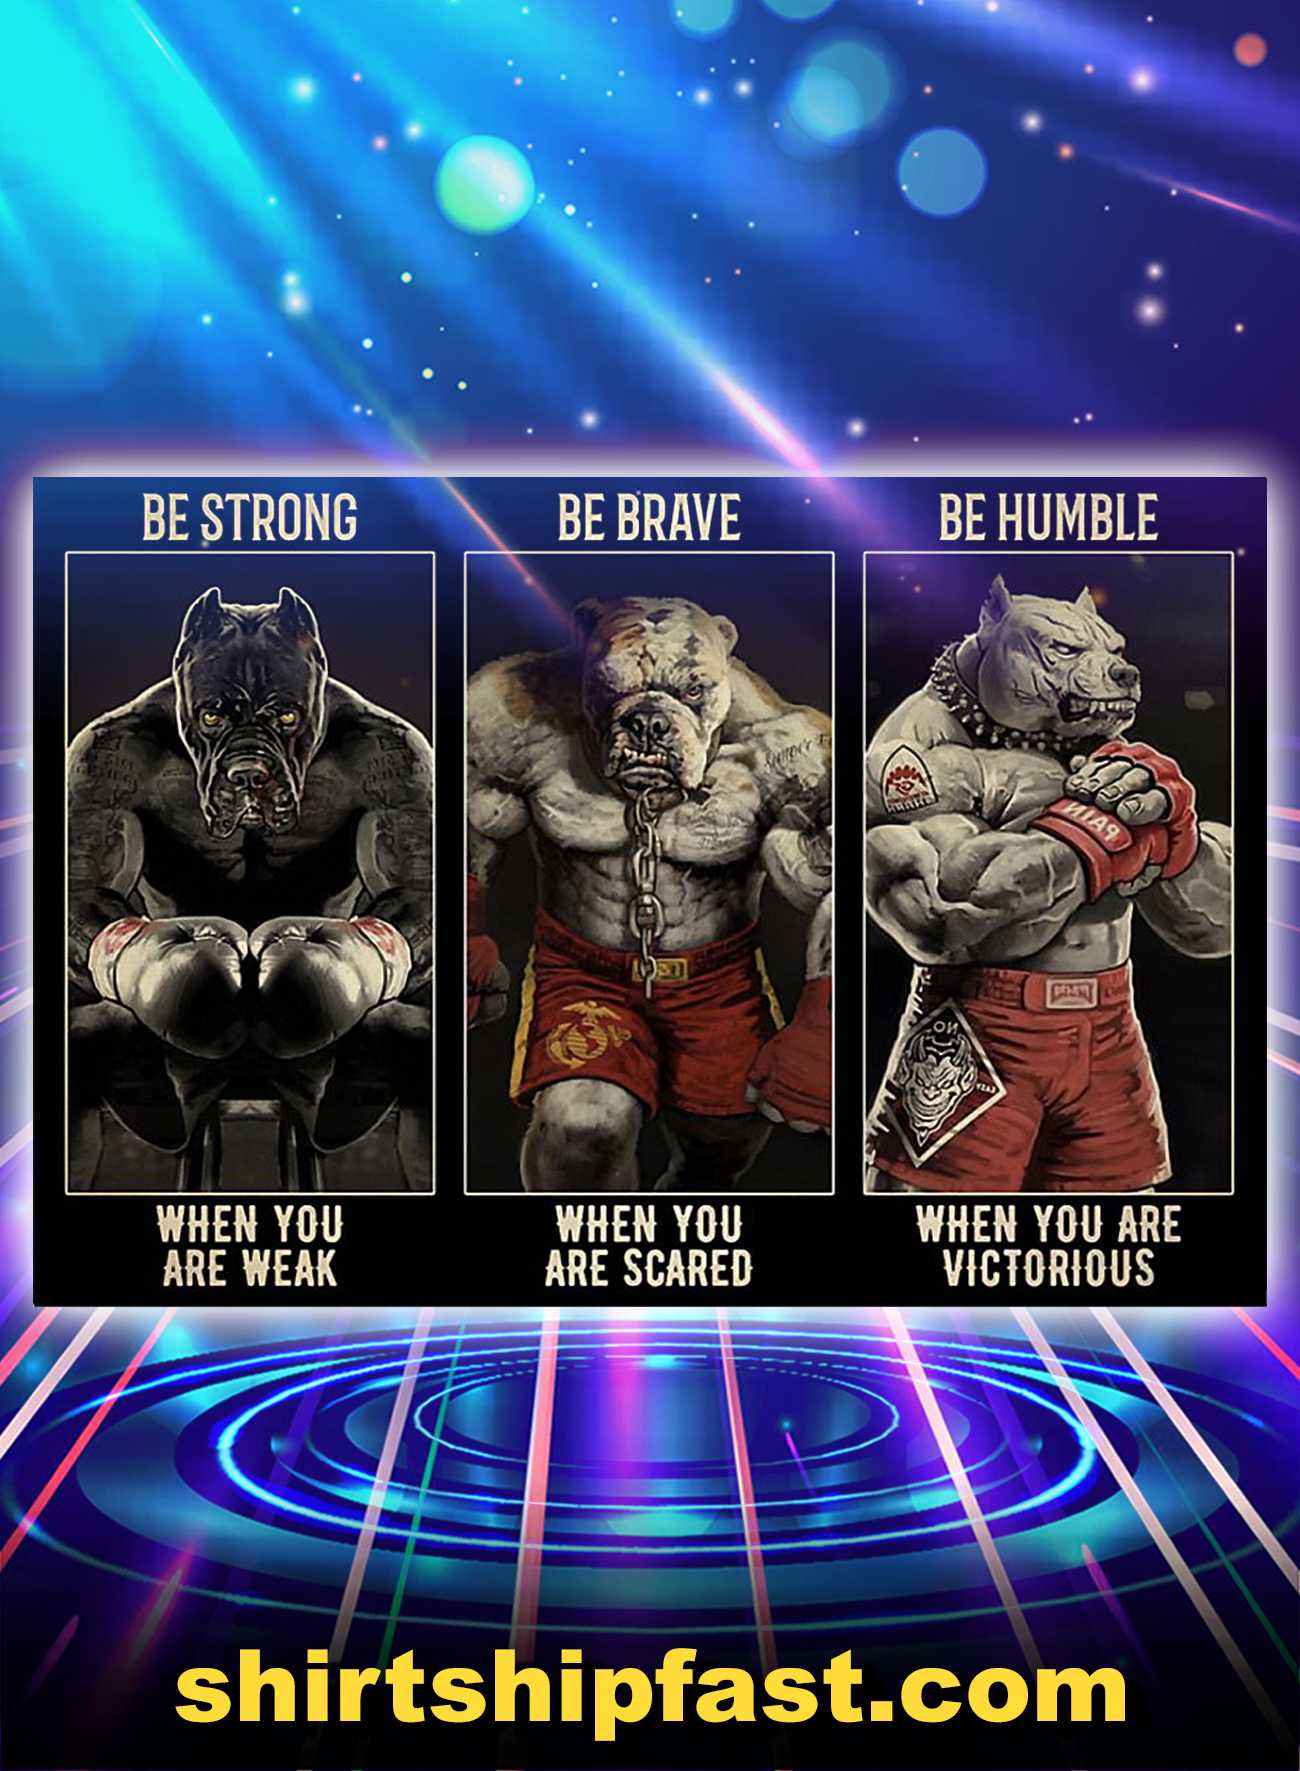 Pitbull boxing be strong be brave be humble poster